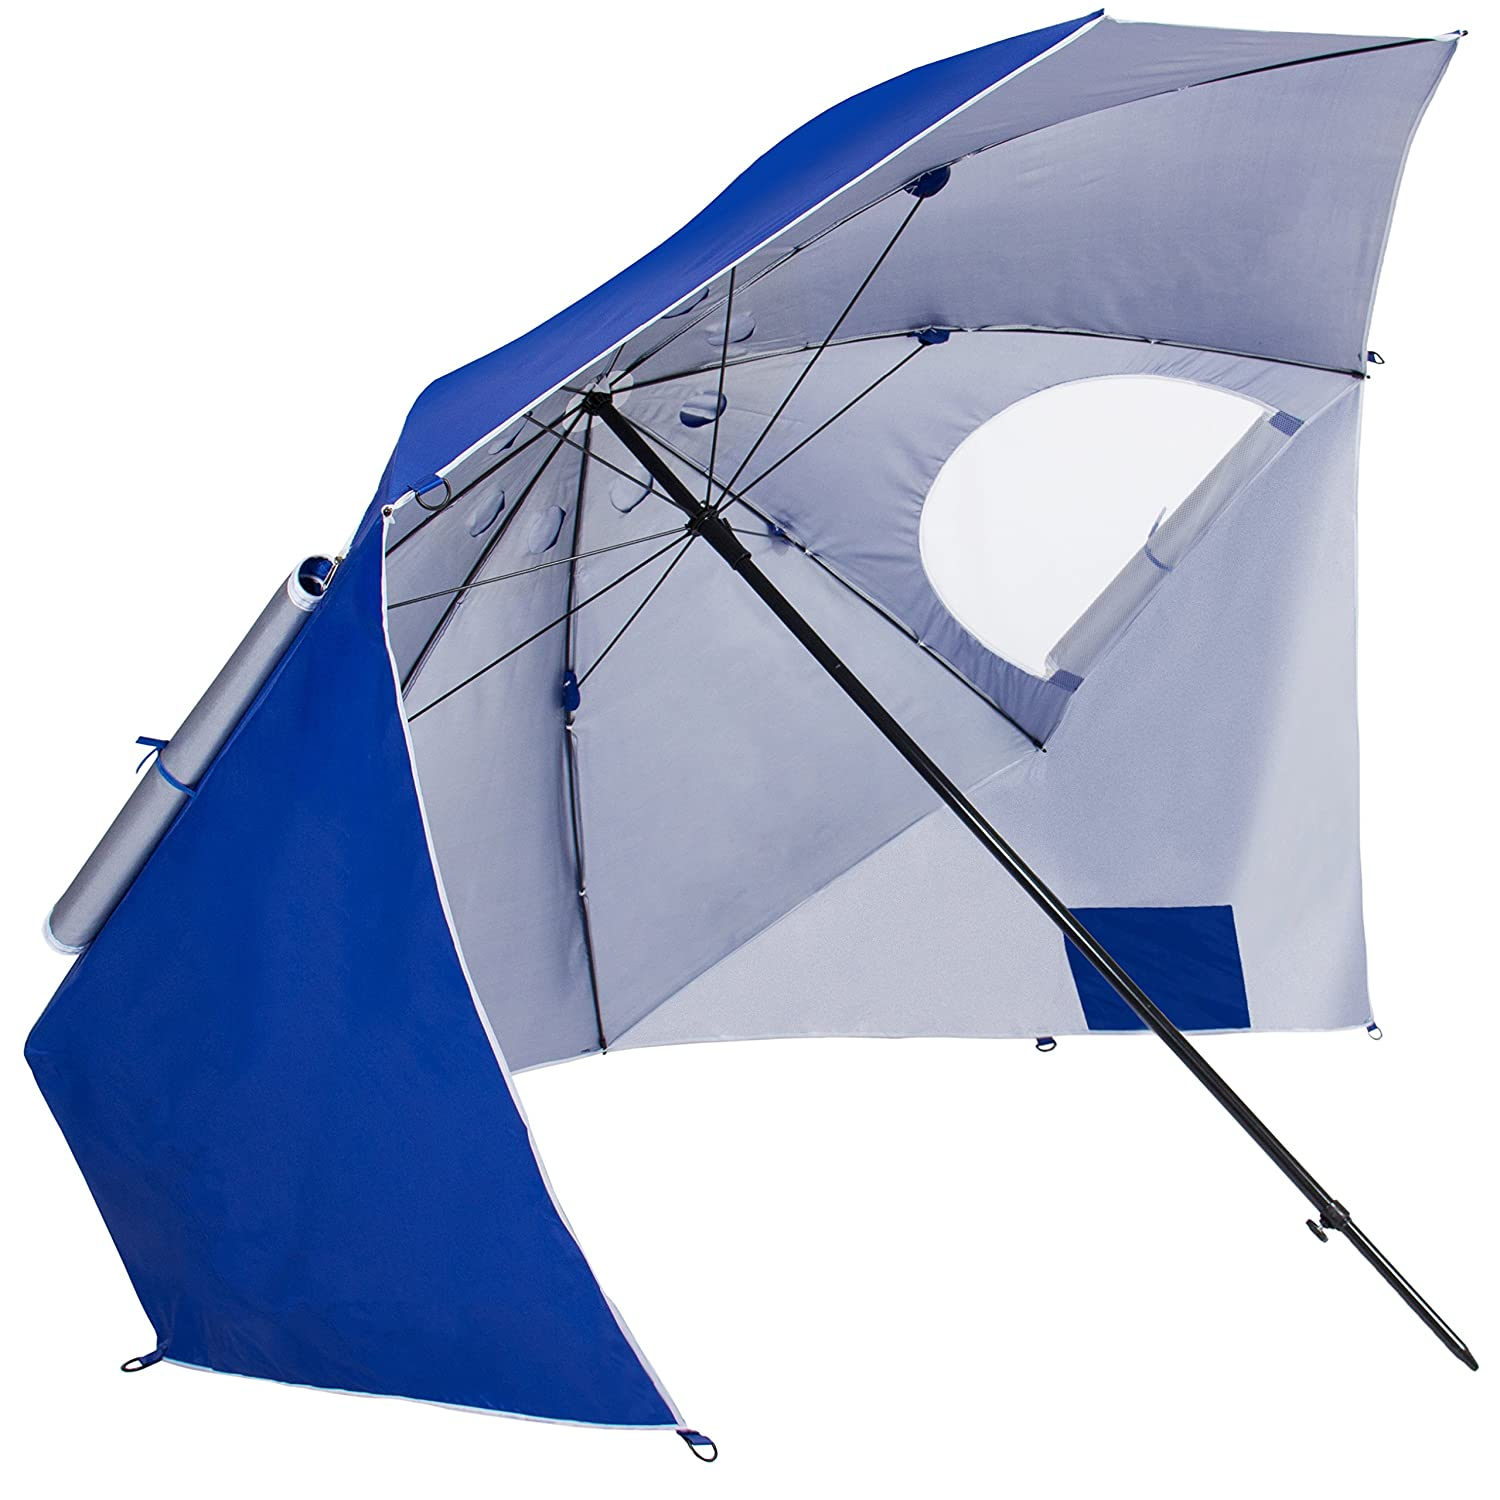 Amazon.com Best Choice Products Beach Portable Sun Umbrella Shelter Park Canopy Tent W/ Ground Nails Ropes u0026 Carrying Case Sports u0026 Outdoors  sc 1 st  Amazon.com & Amazon.com: Best Choice Products Beach Portable Sun Umbrella ...